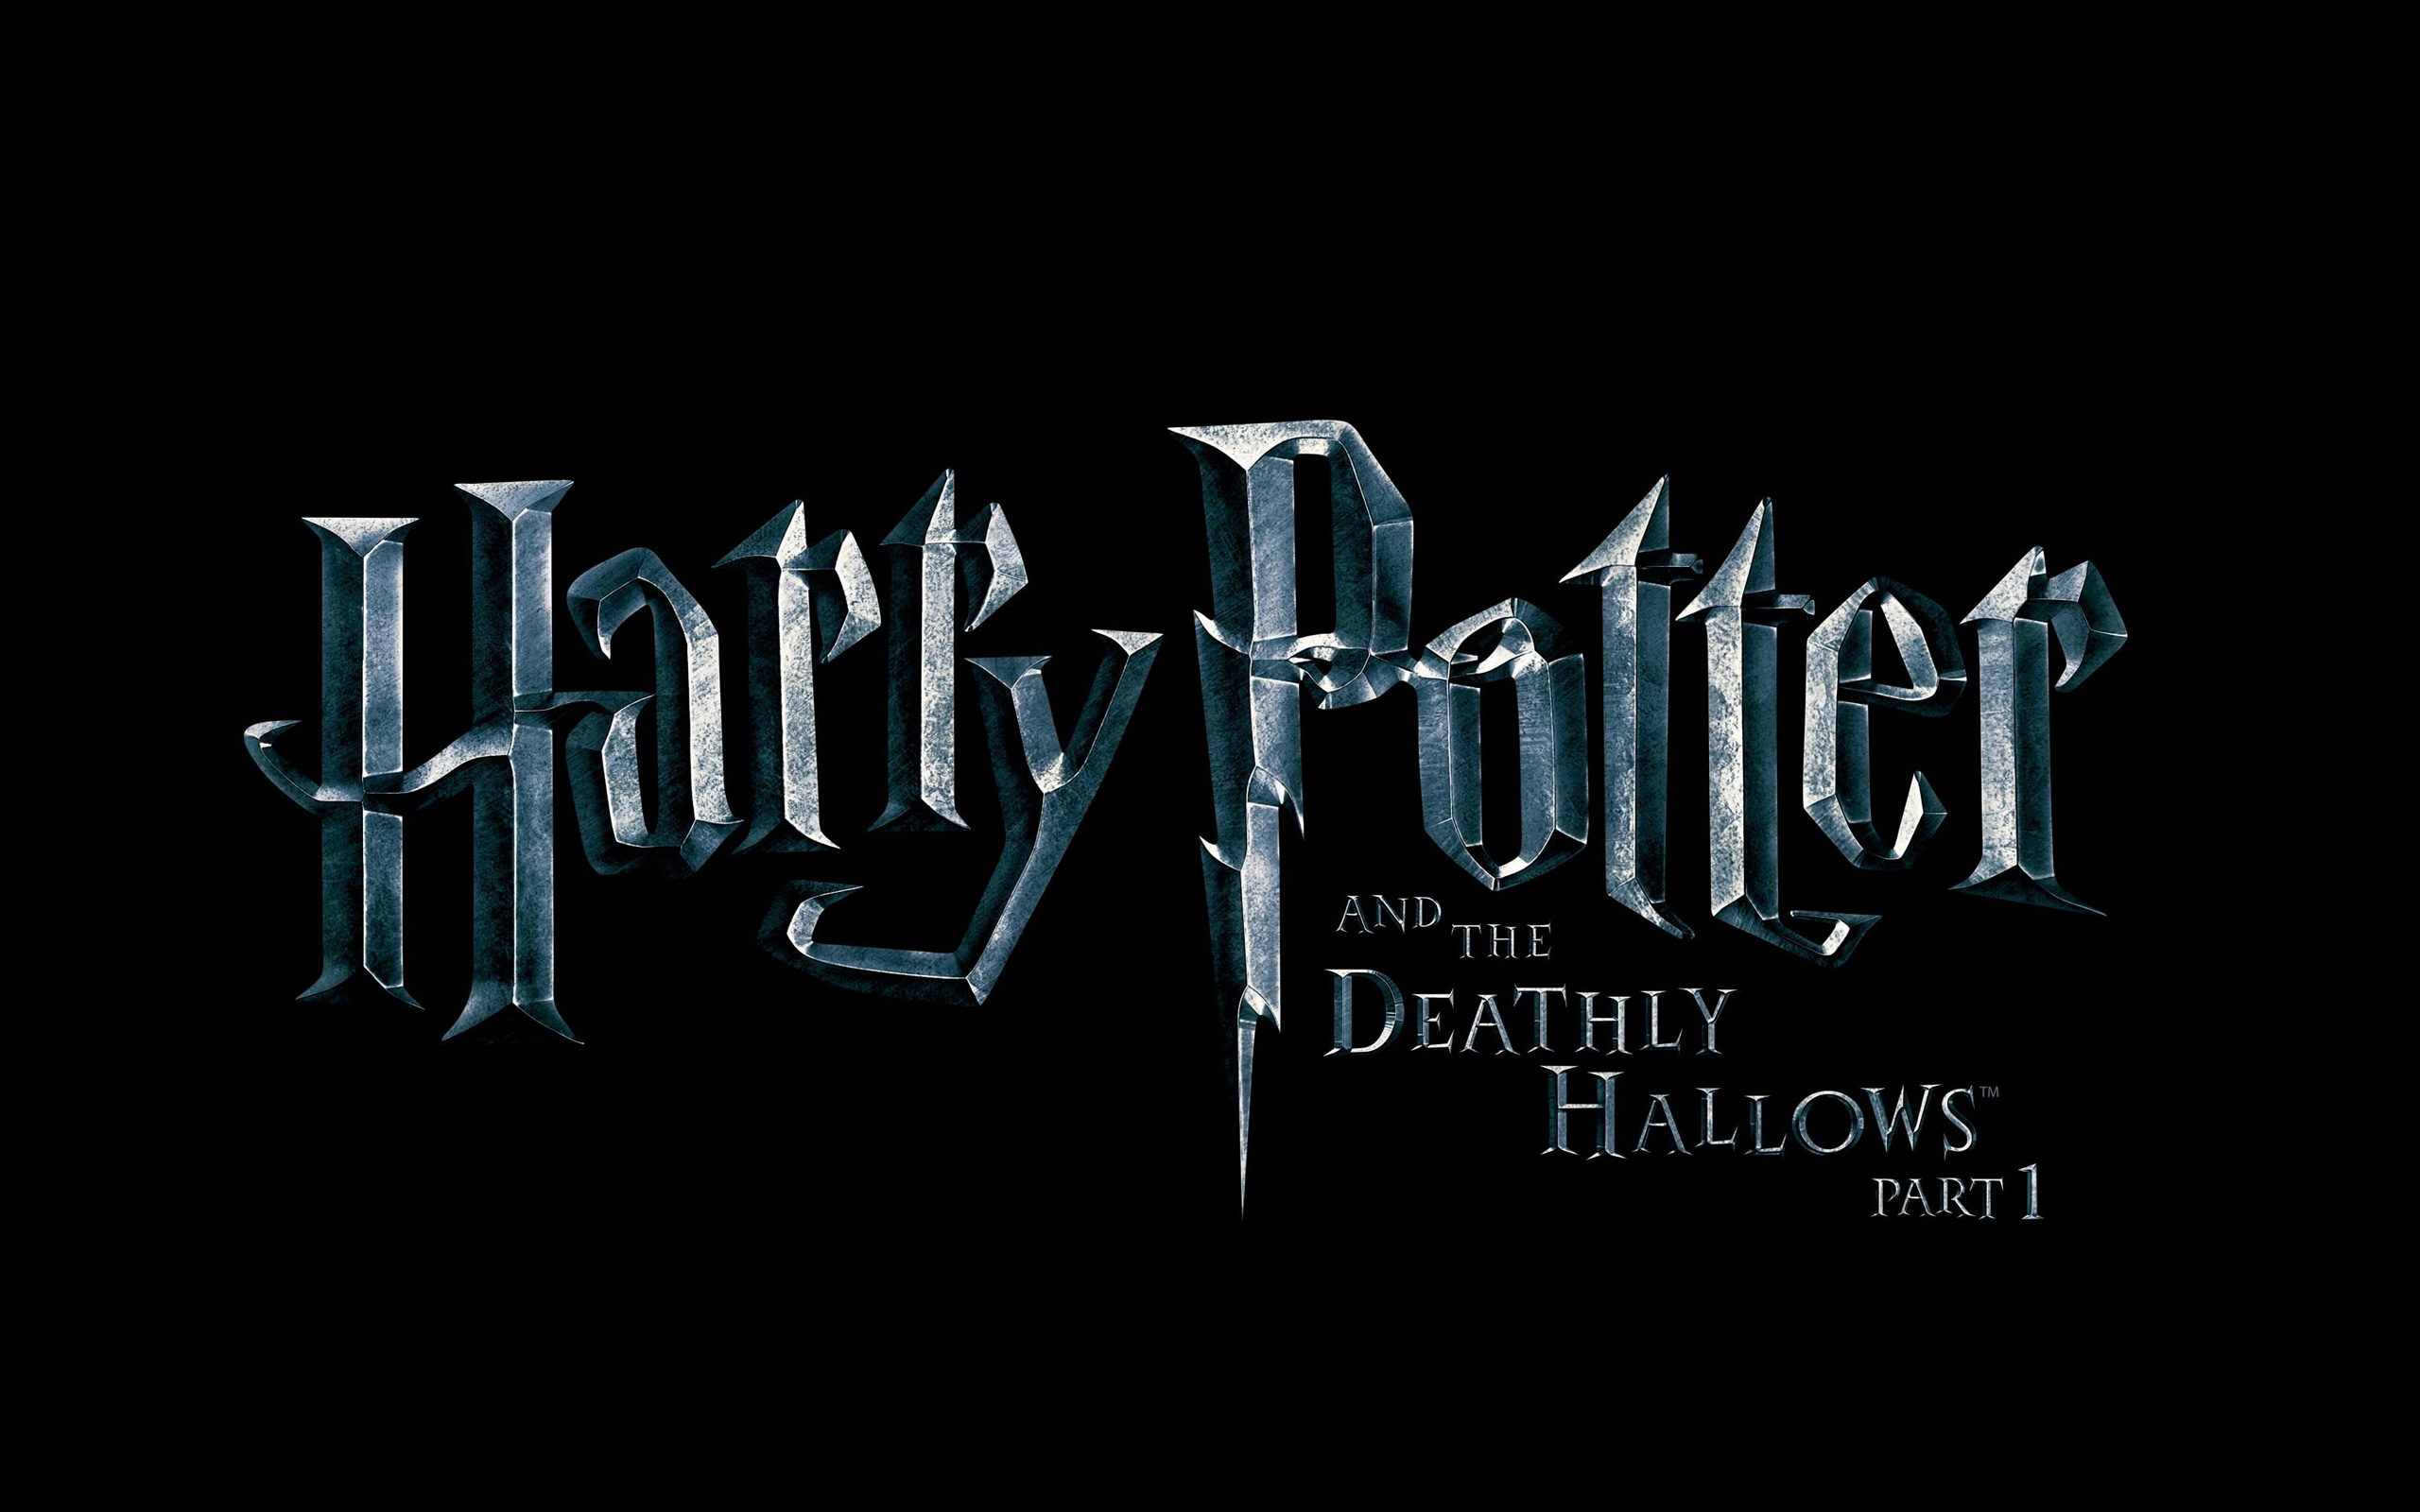 Top Wallpaper Harry Potter Mac - harry-potter%3A-deathly-hallows_wallpapers_23311_2560x1600  You Should Have_17112.jpg